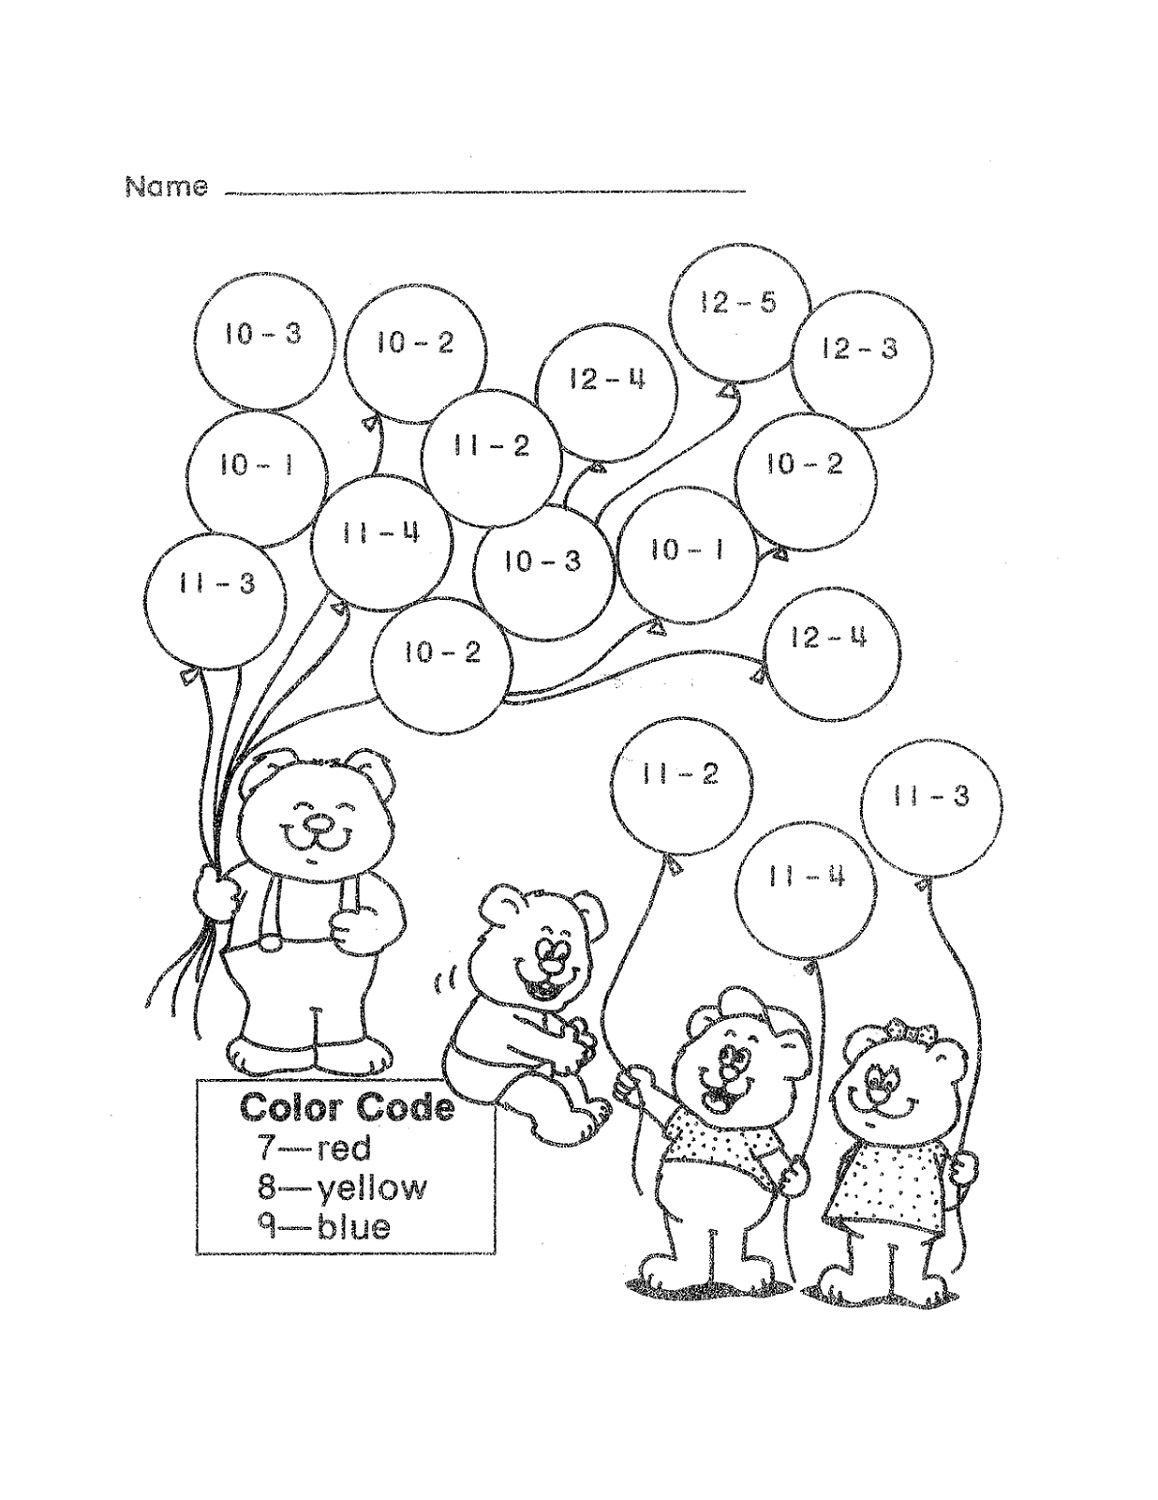 Printable Math Games 2nd Grade Kids Learning Activity